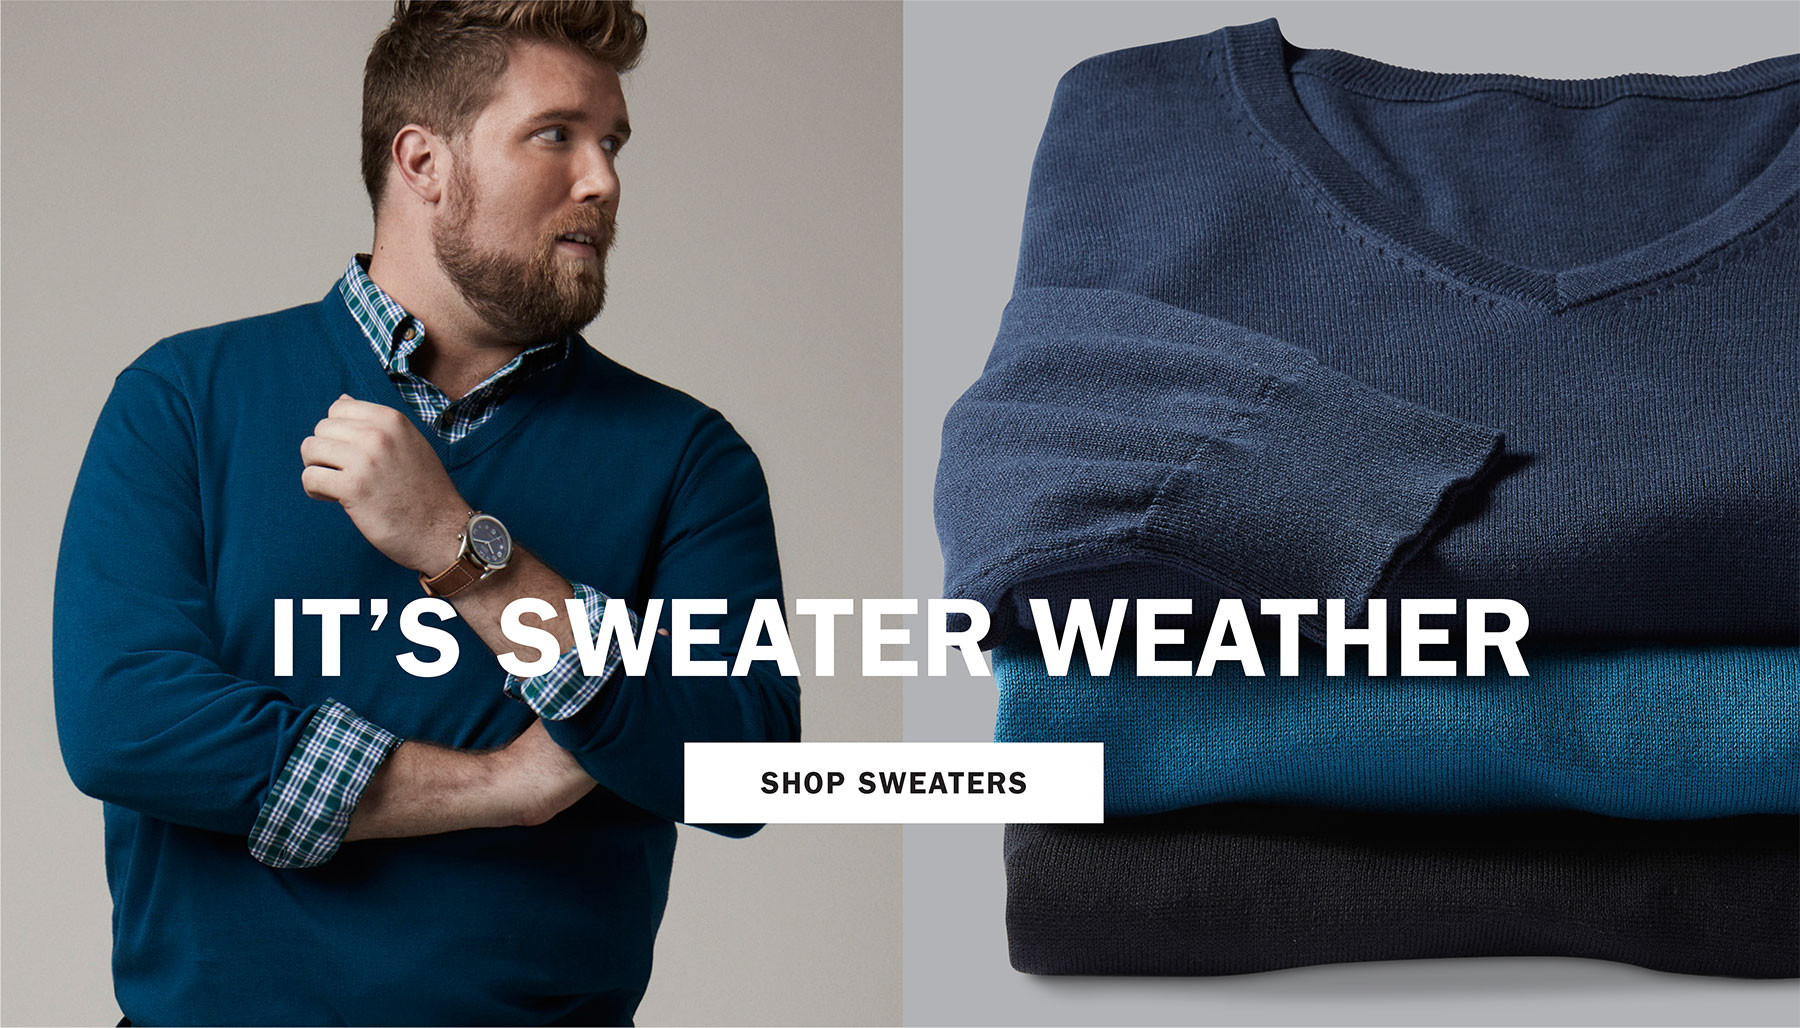 IT'S SWEATER WEATHER | SHOP SWEATERS